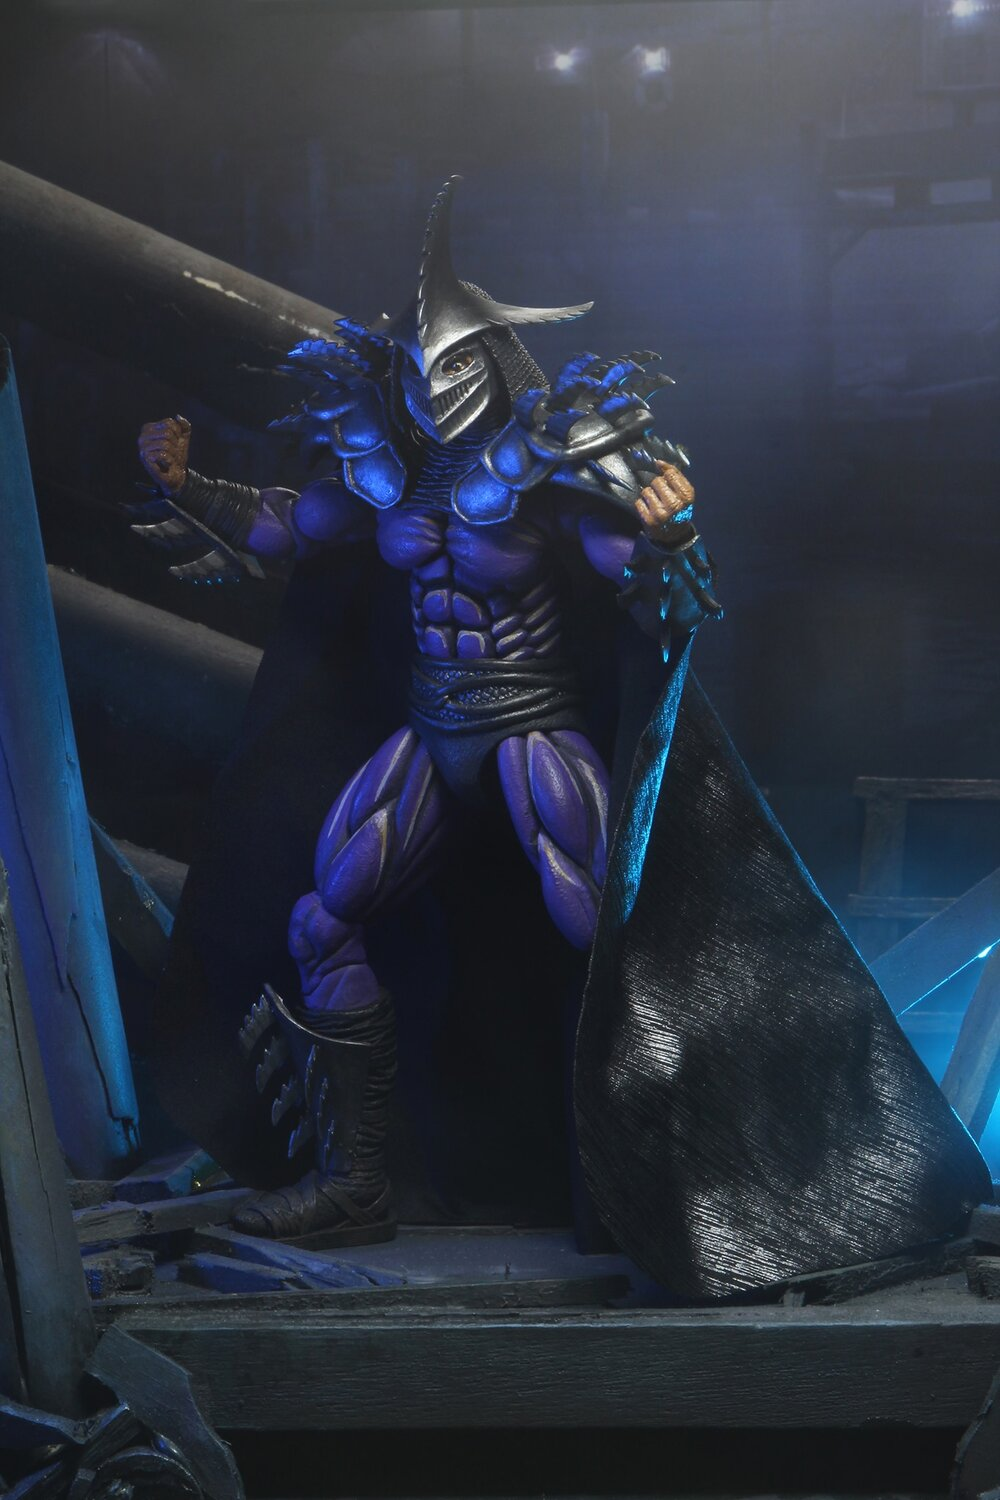 NECA-TMNT-2-Deluxe-Super-Shredder-010.jpg